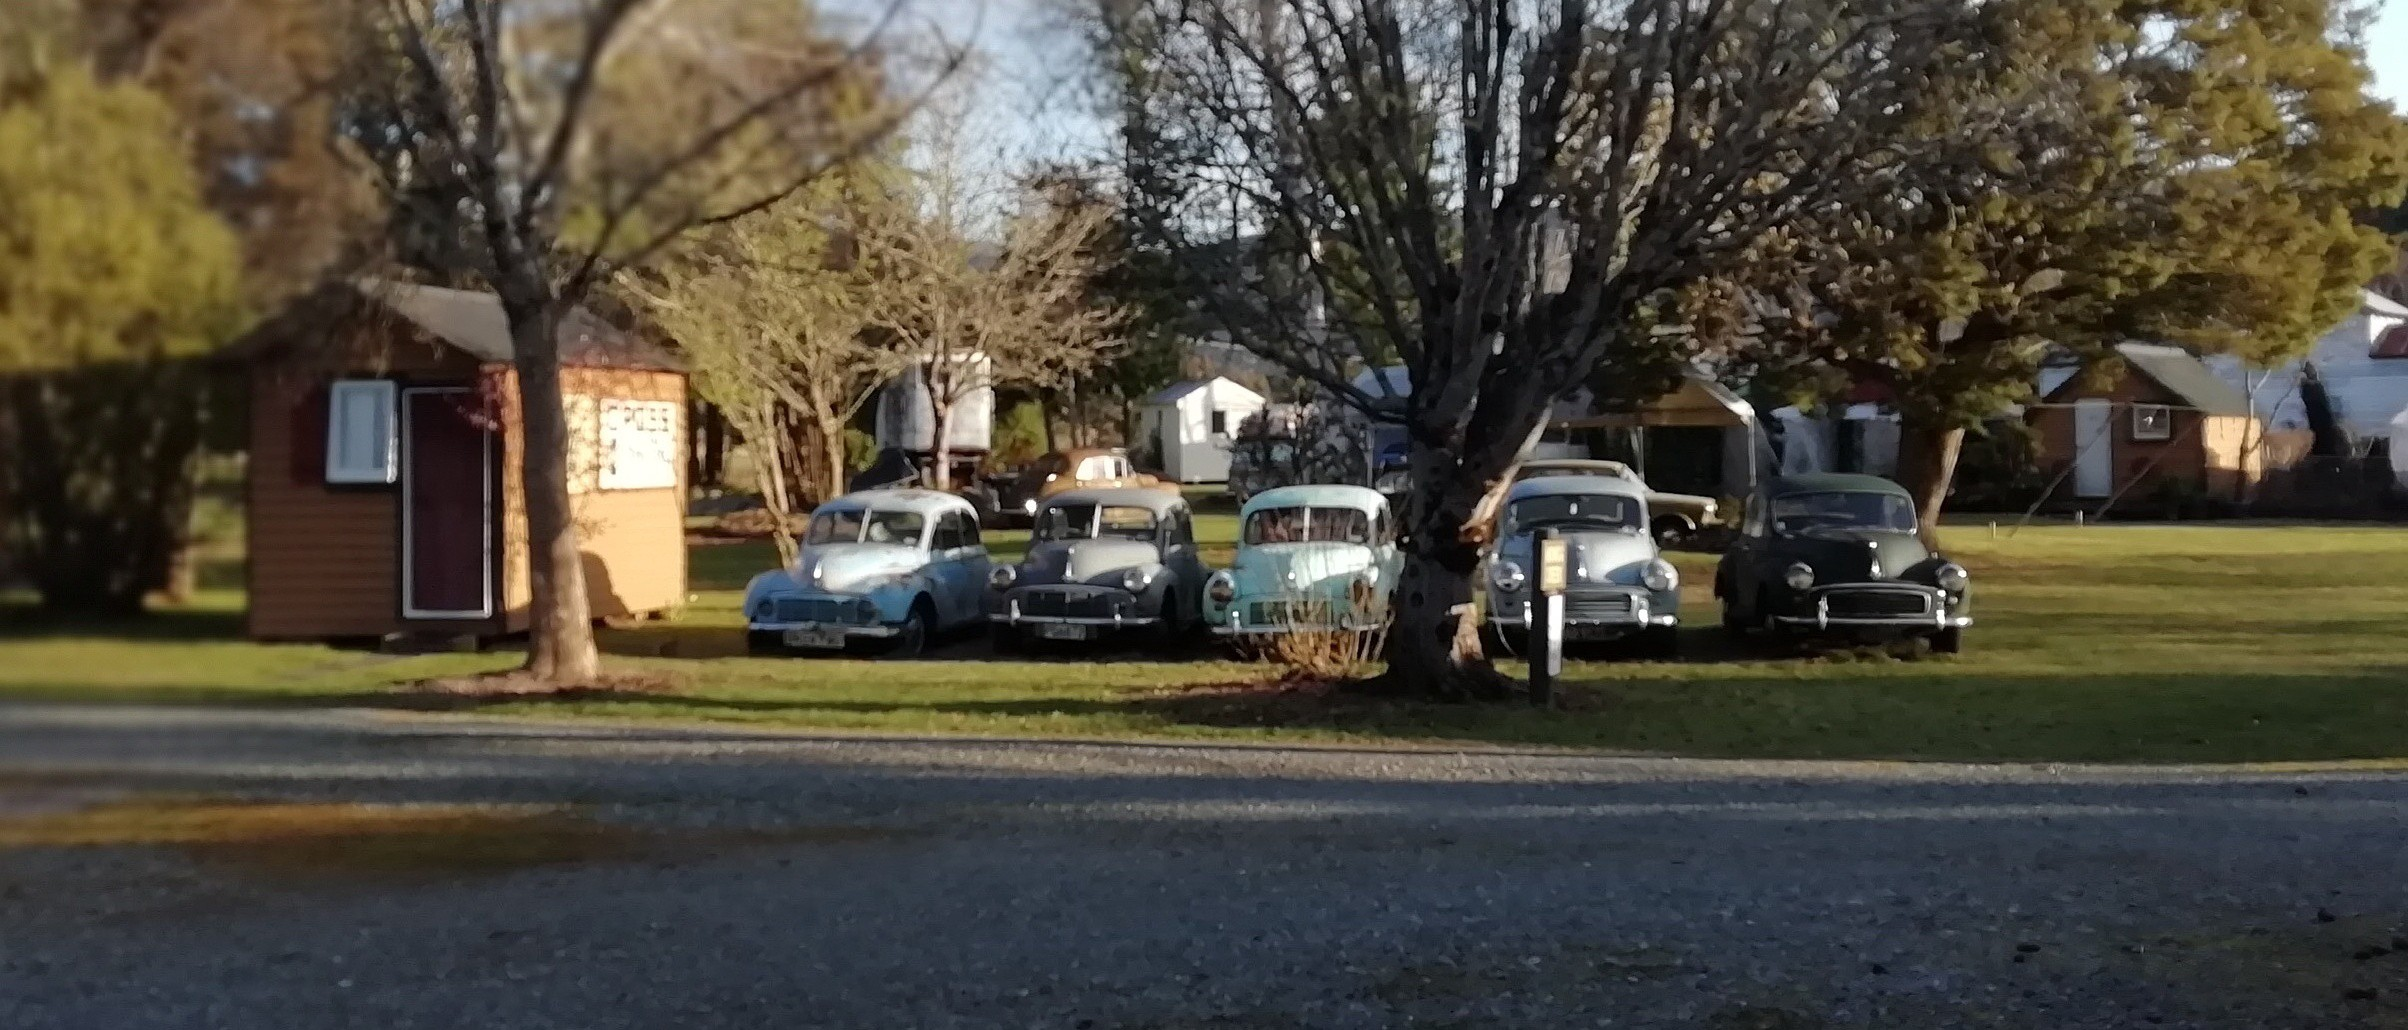 A row of Morris Minor cars